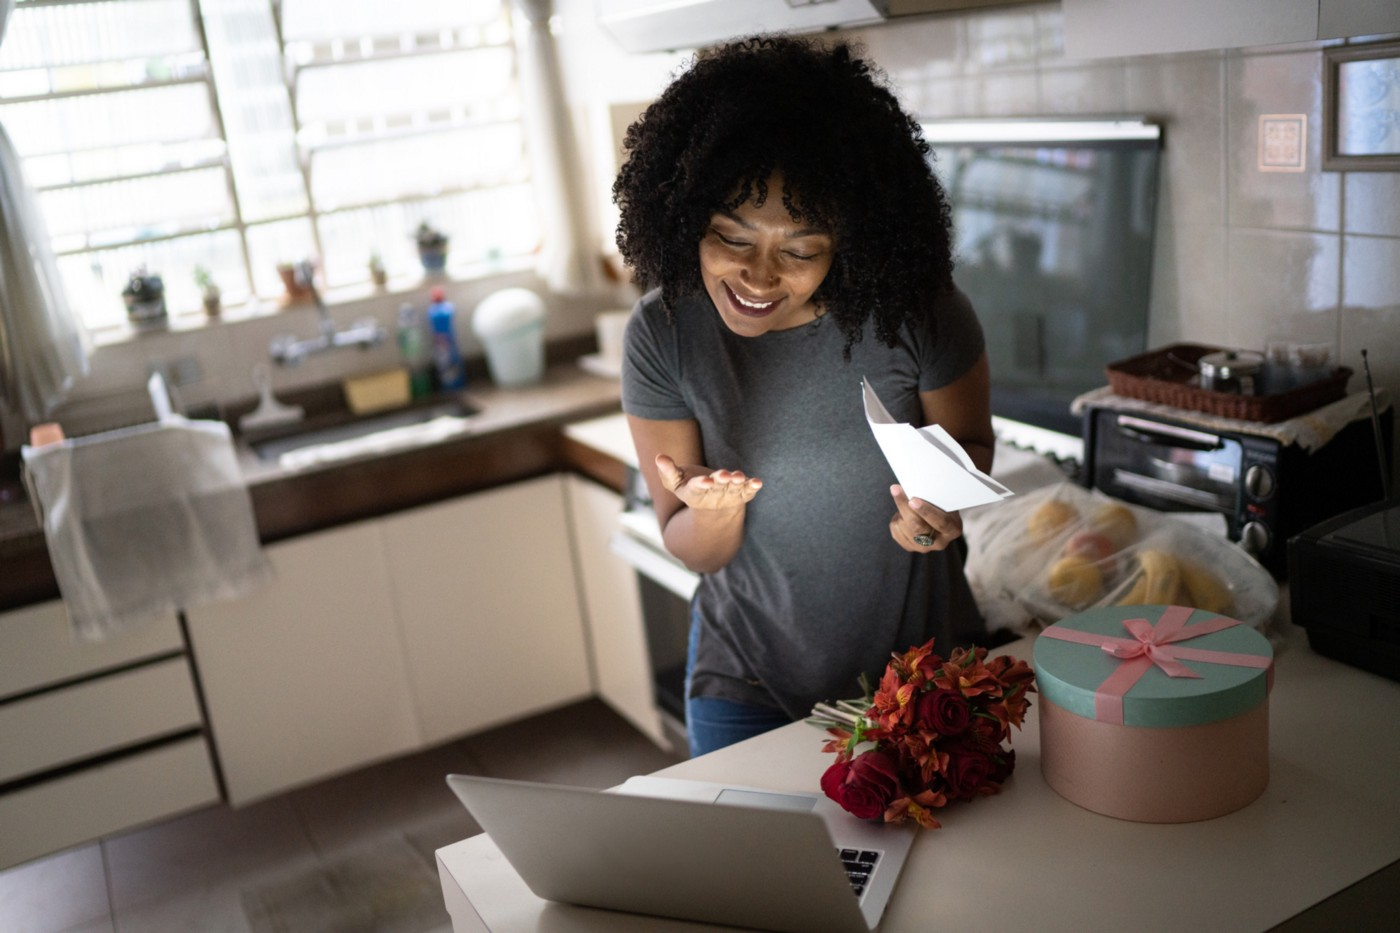 A photo of woman receiving flowers / present in the mail and talking to lover over a video call.